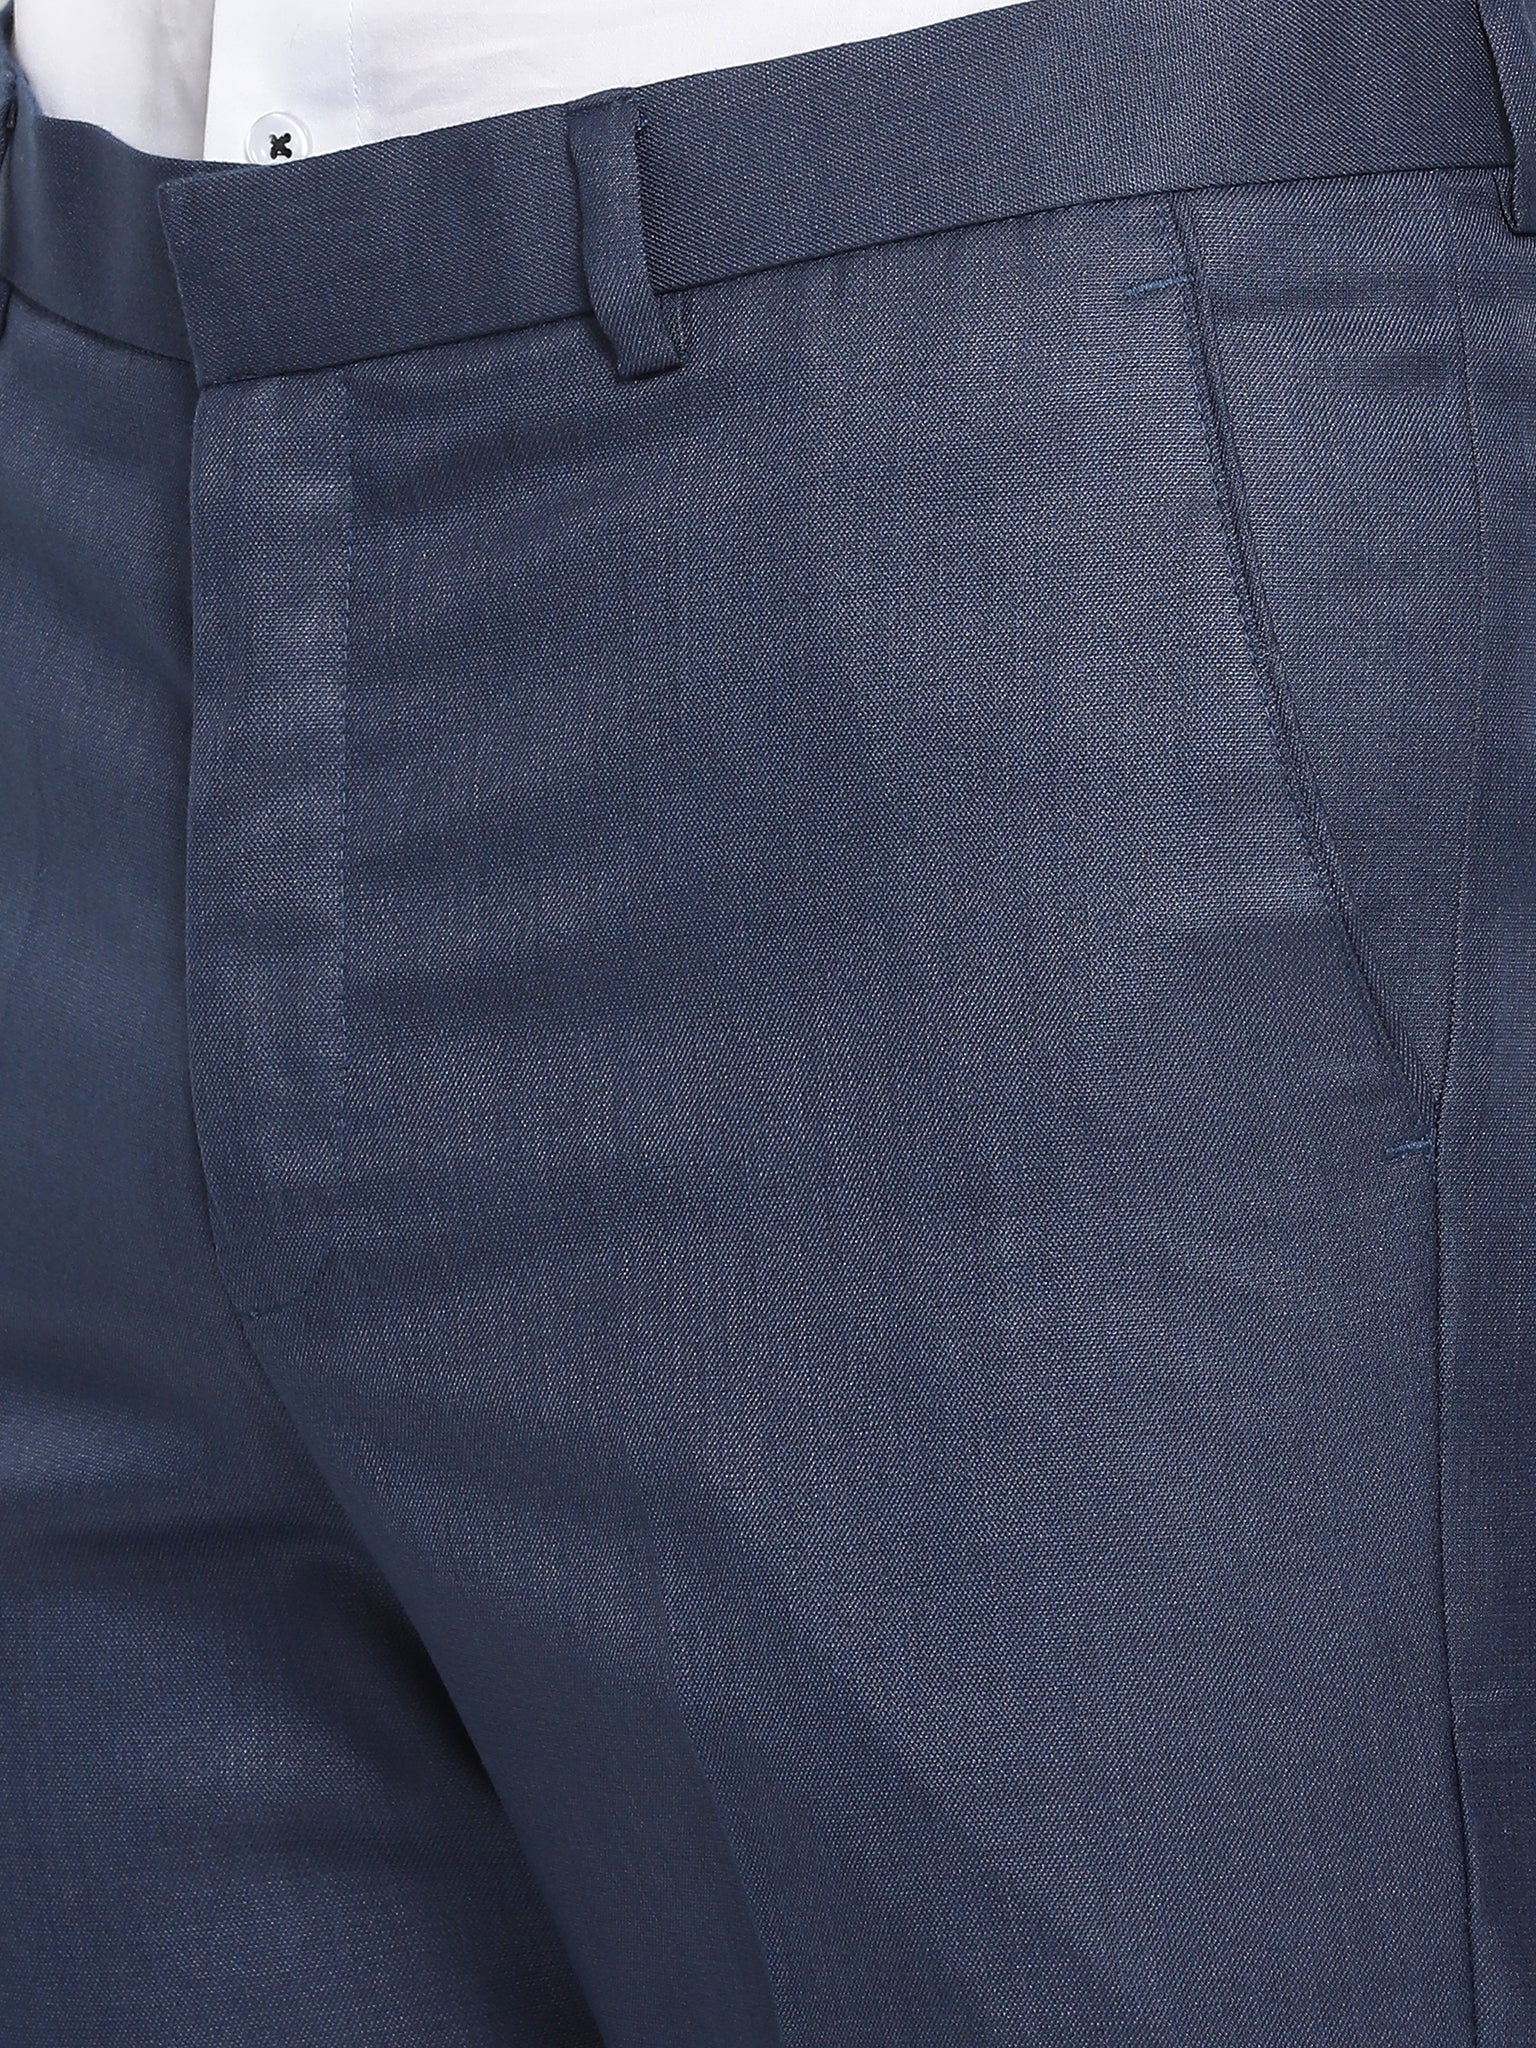 Slim Fit Space Blue Suit Pant